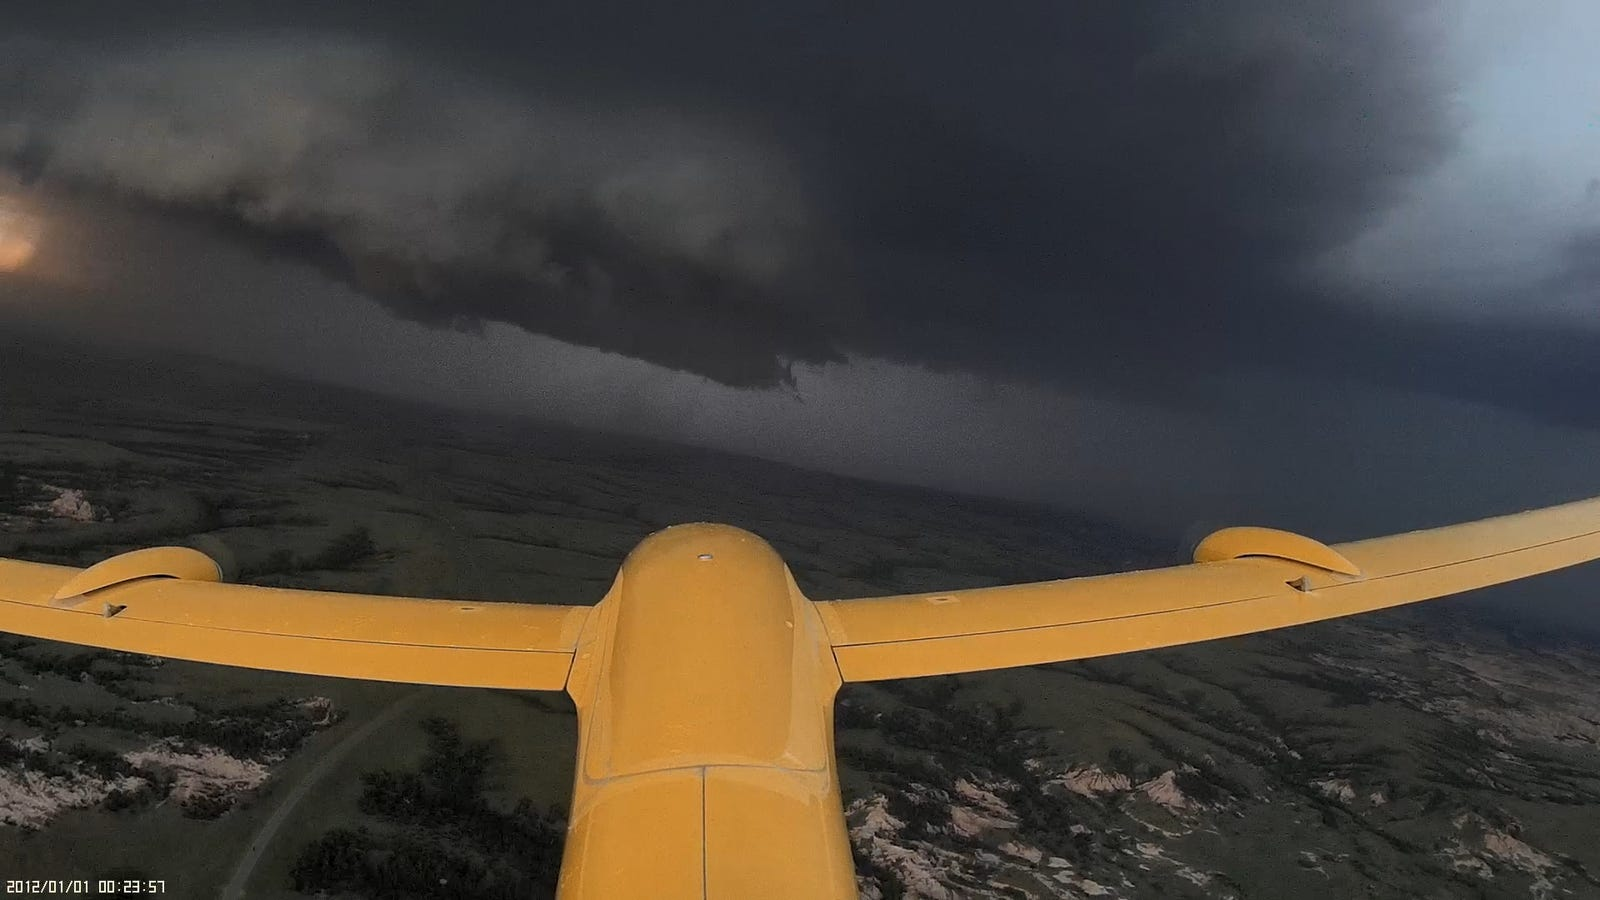 Scientists Are Probing Tornadoes With Drones to Save Lives